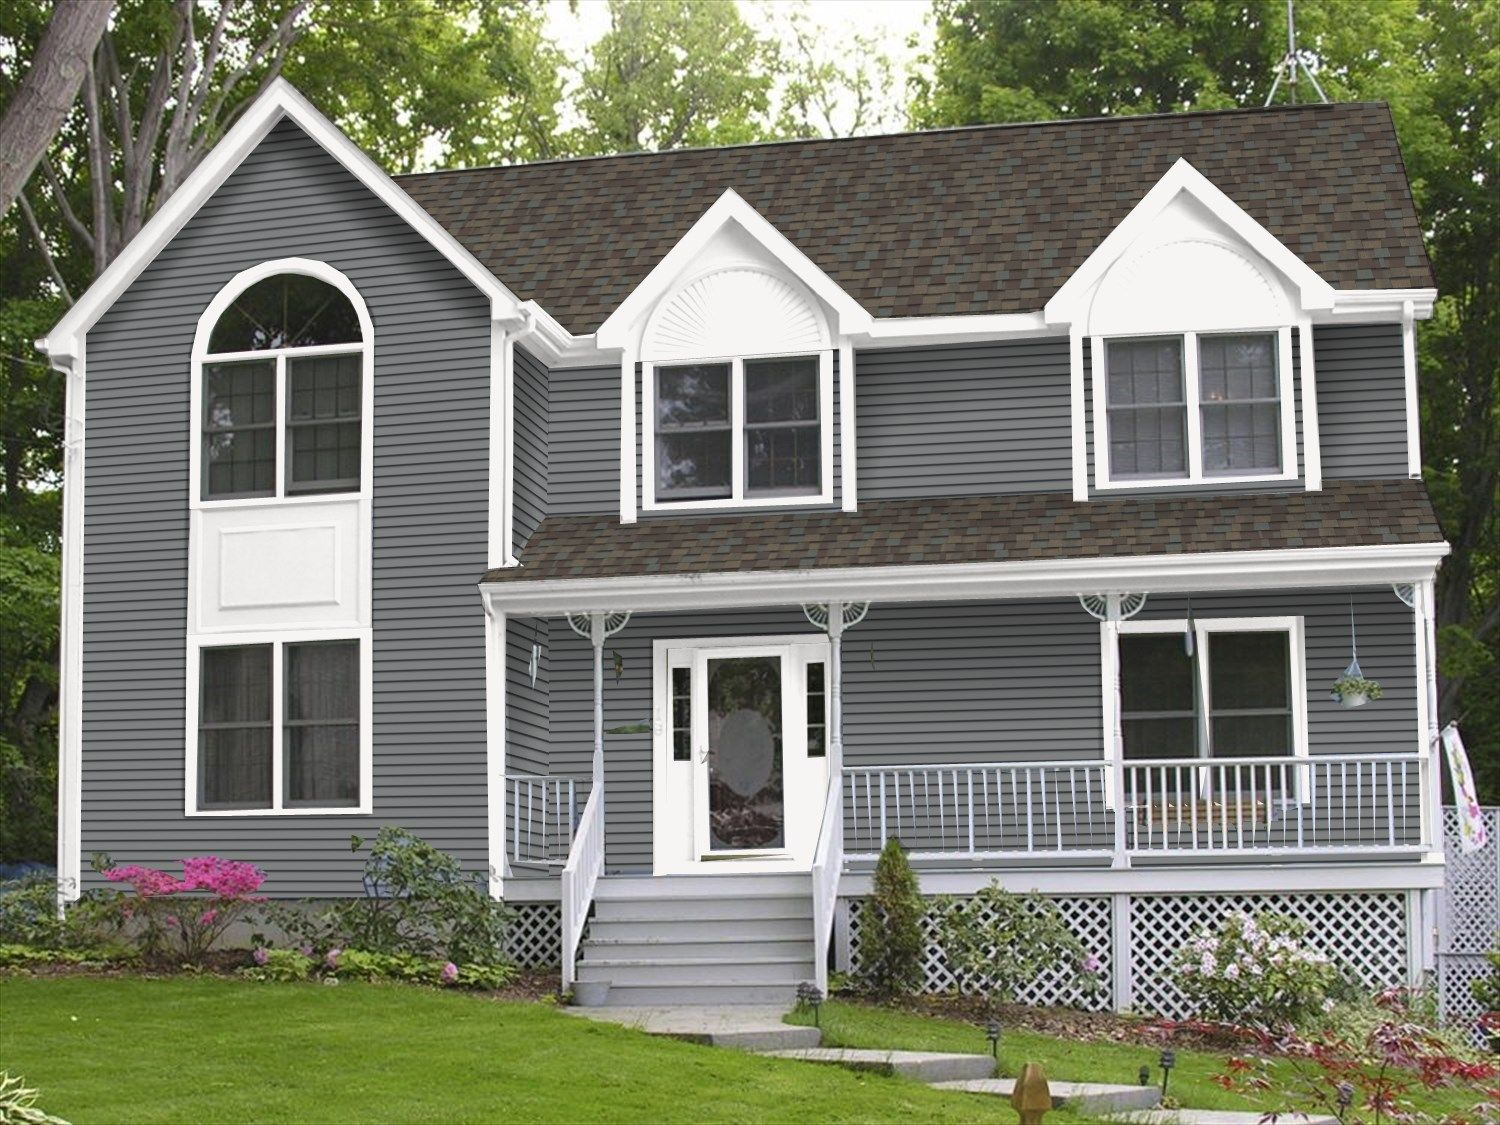 Certainteed Charcoal House Siding Exterior House Renovation House Exterior